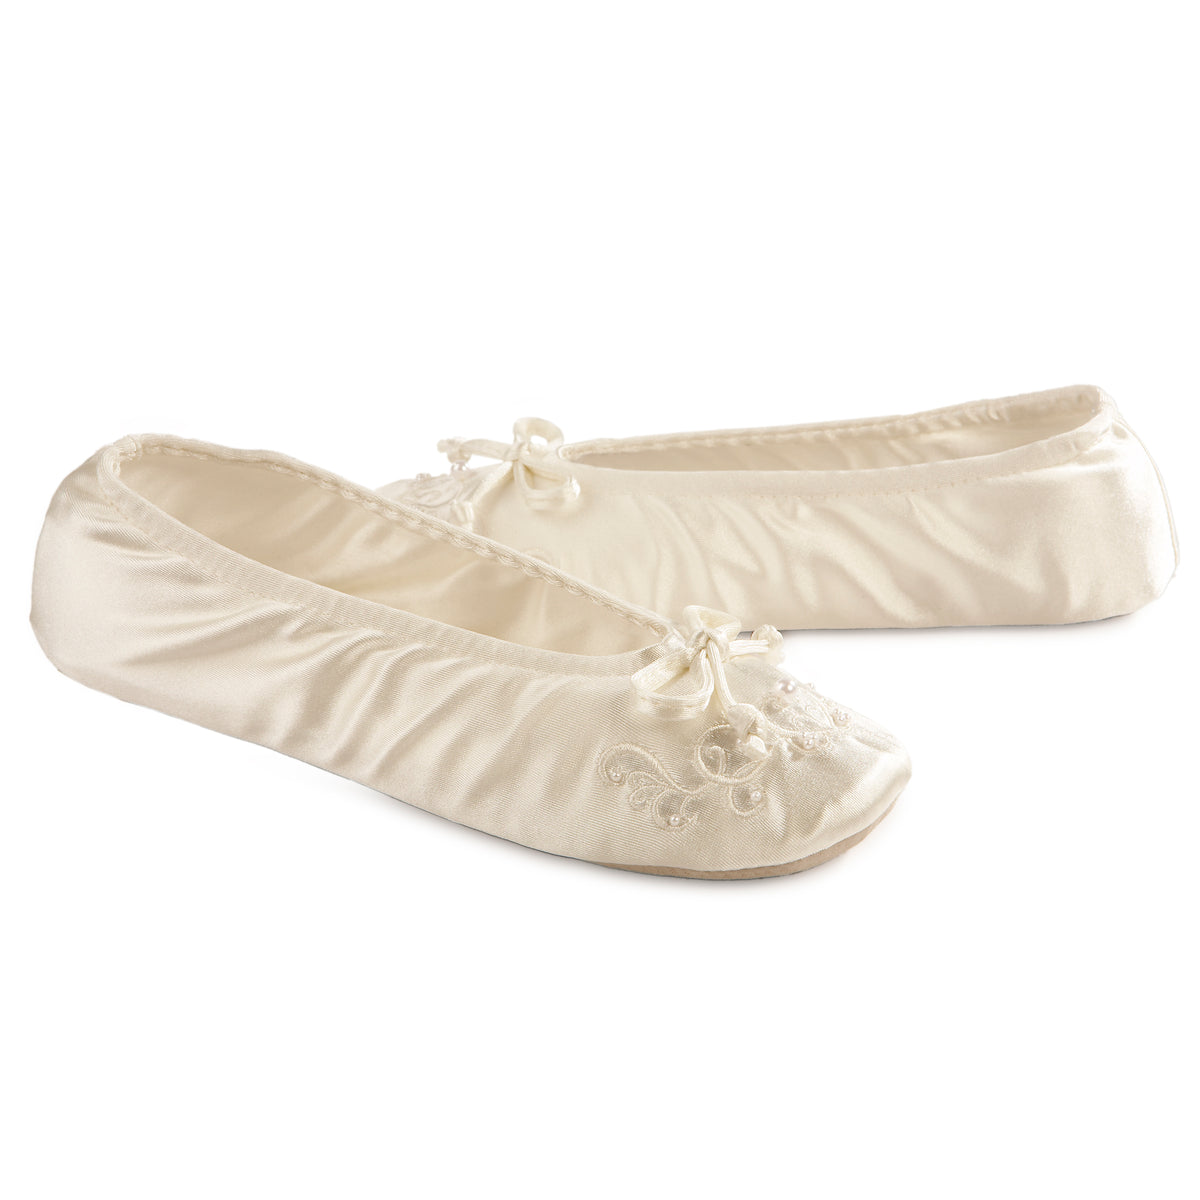 Isotoner Women's Embroidered Pearl Satin Ballerina Slippers